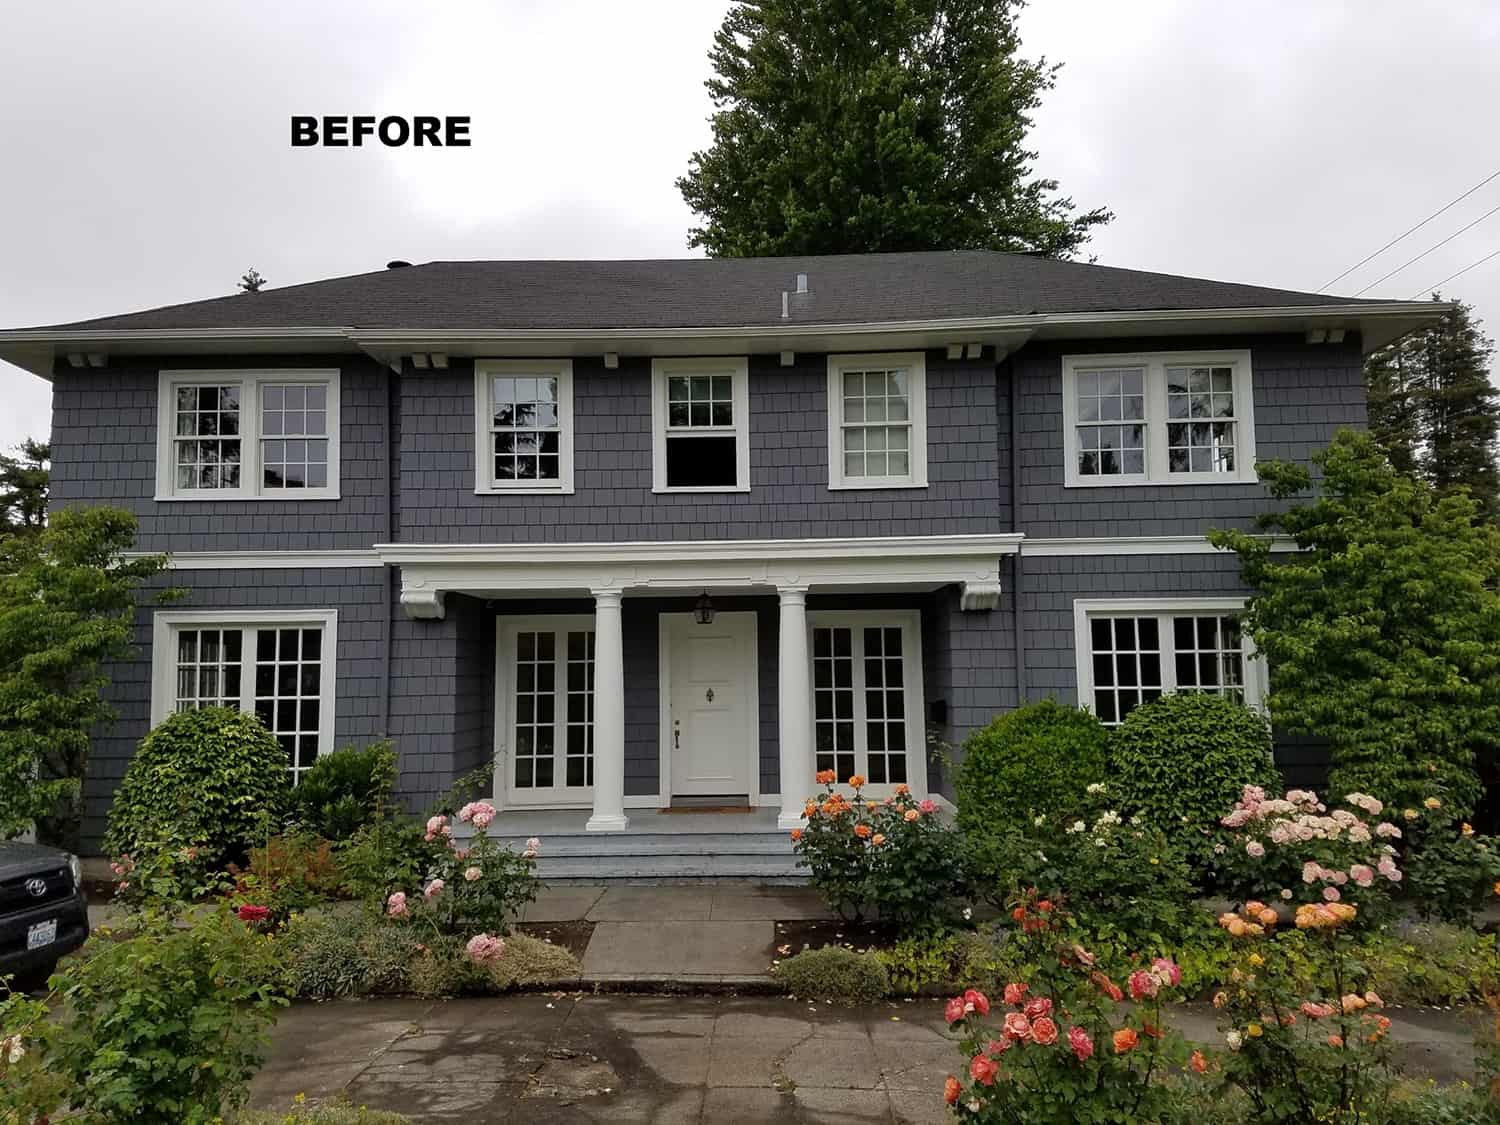 colonial-revival-house-exterior-before-renovaton